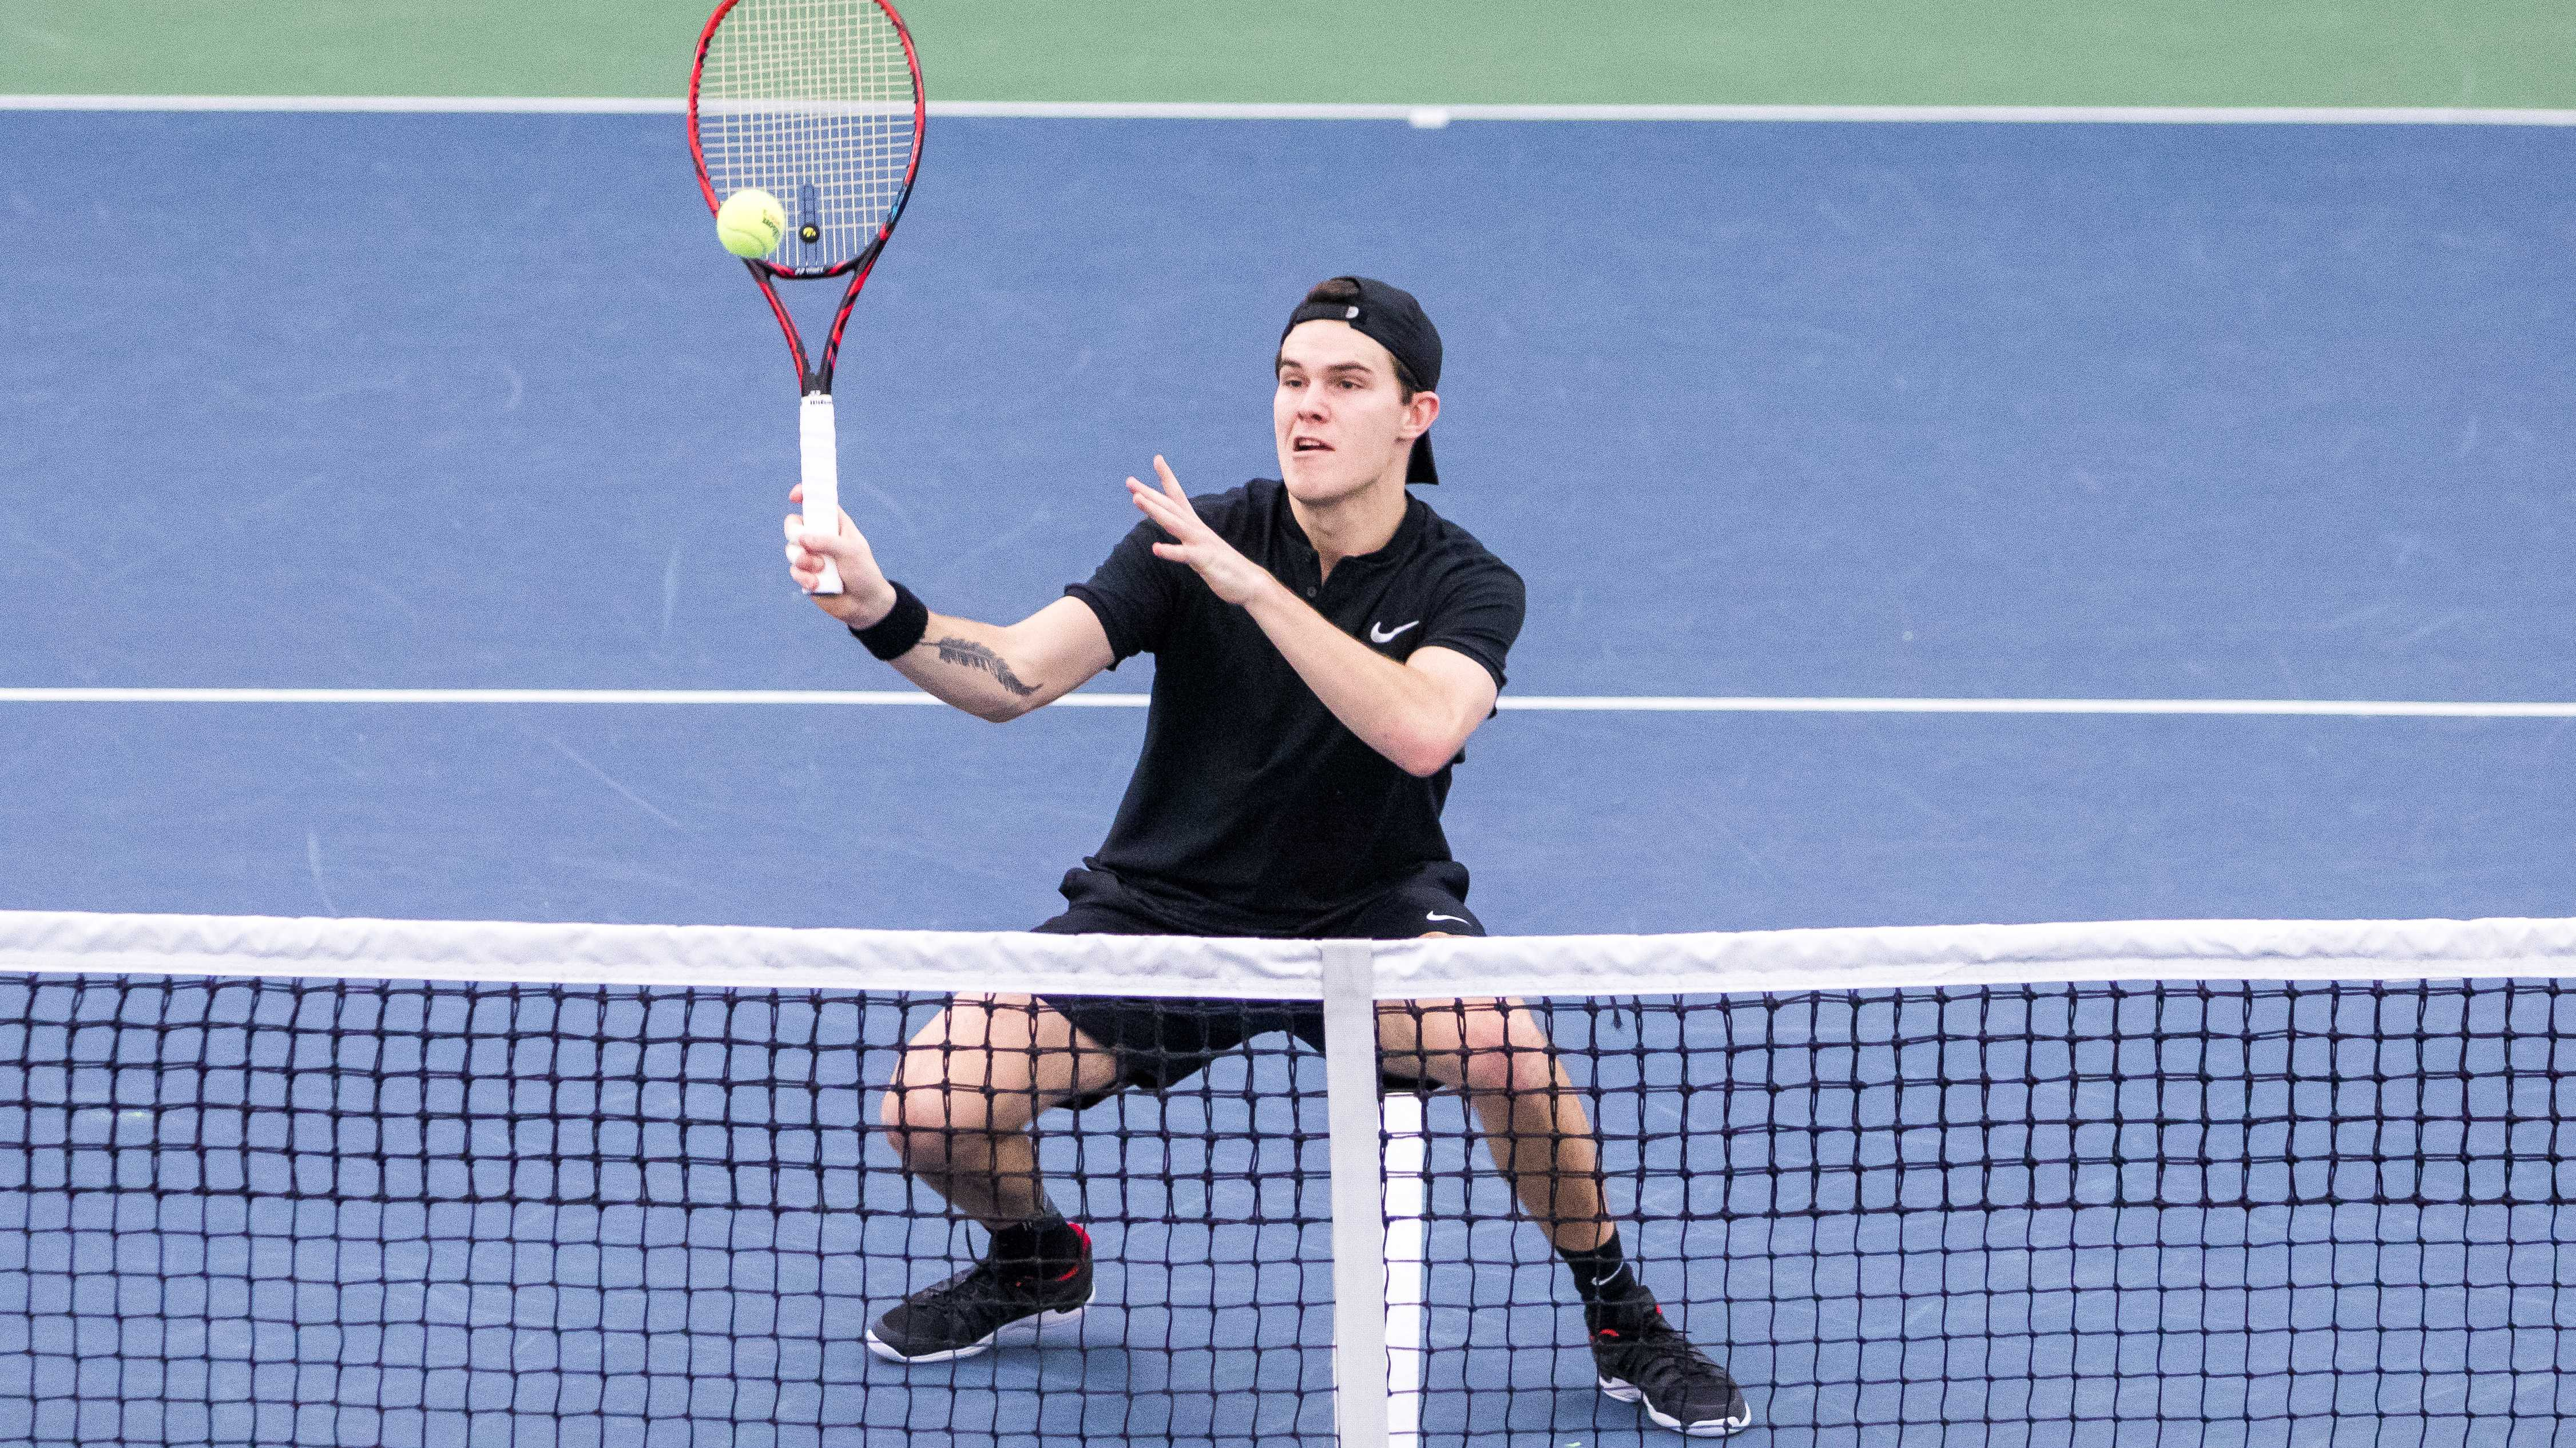 Iowa tennis player Jonas Larson  plays at the net during a doubles match against Cornell University on Friday, Mar. 2, 2018. The Big Red defeated the Hawkeyes 4-3. (David Harmantas/The Daily Iowan)